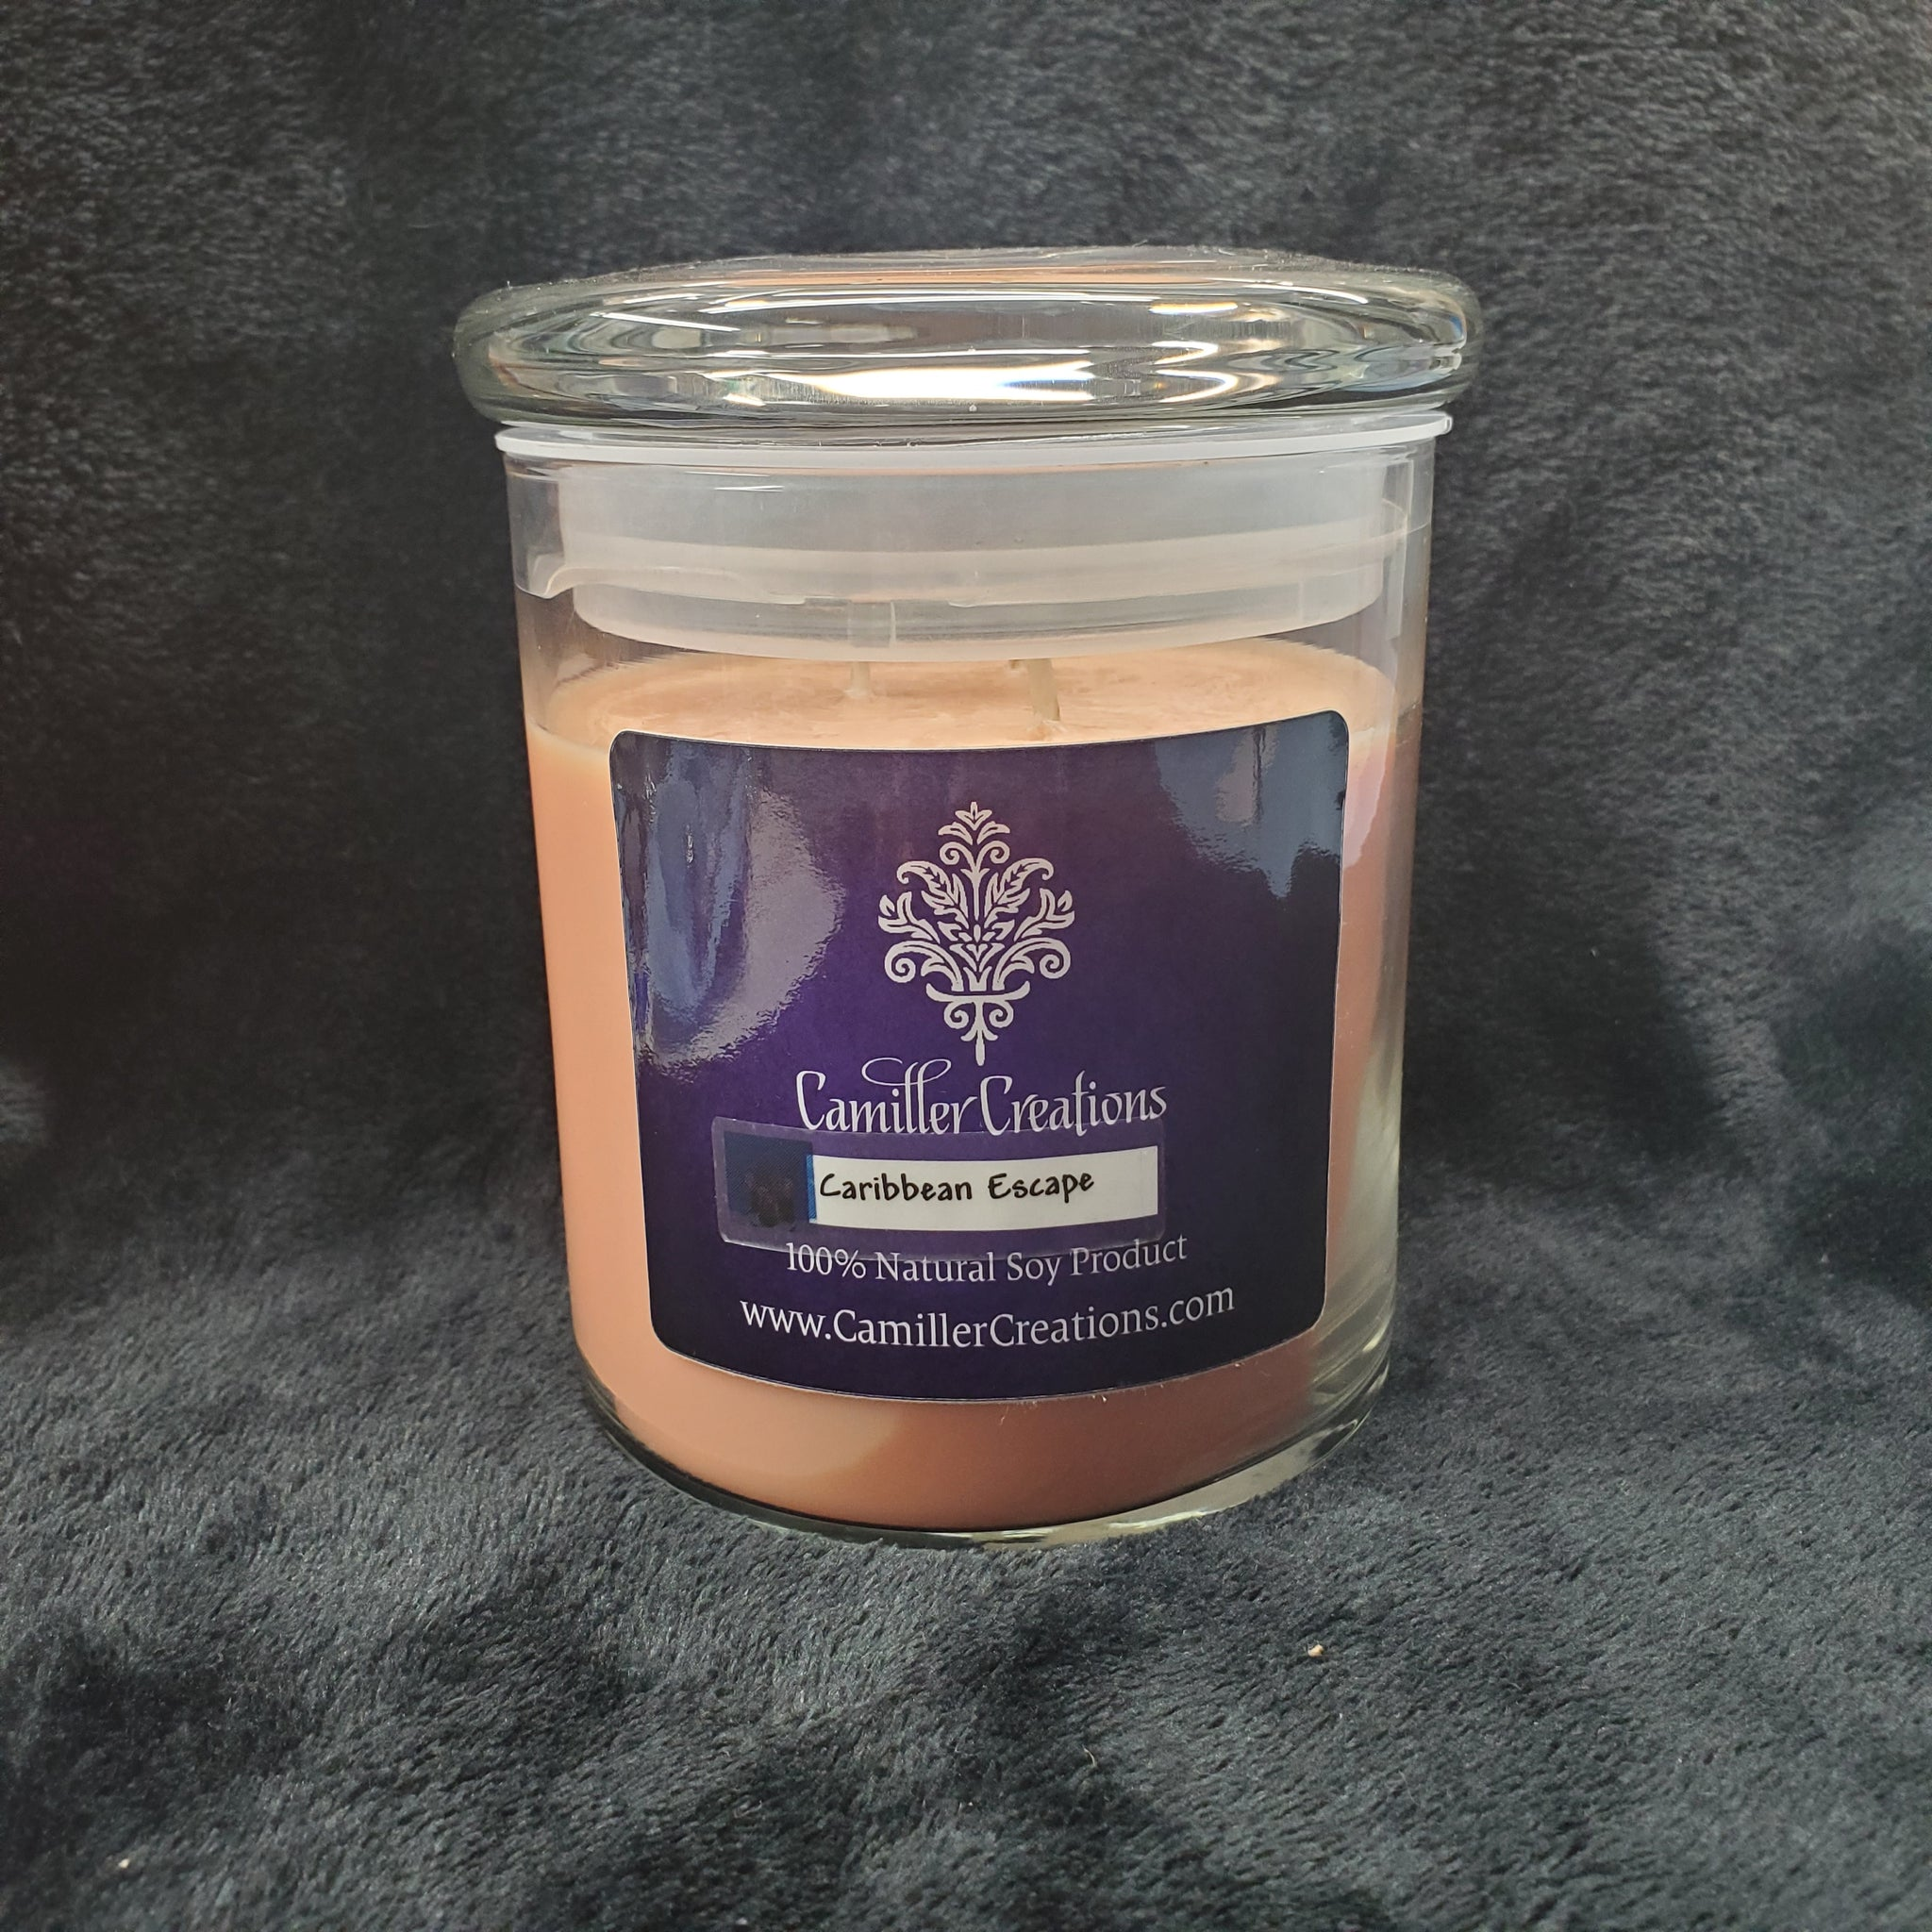 Caribbean Escape 3-wick Candle